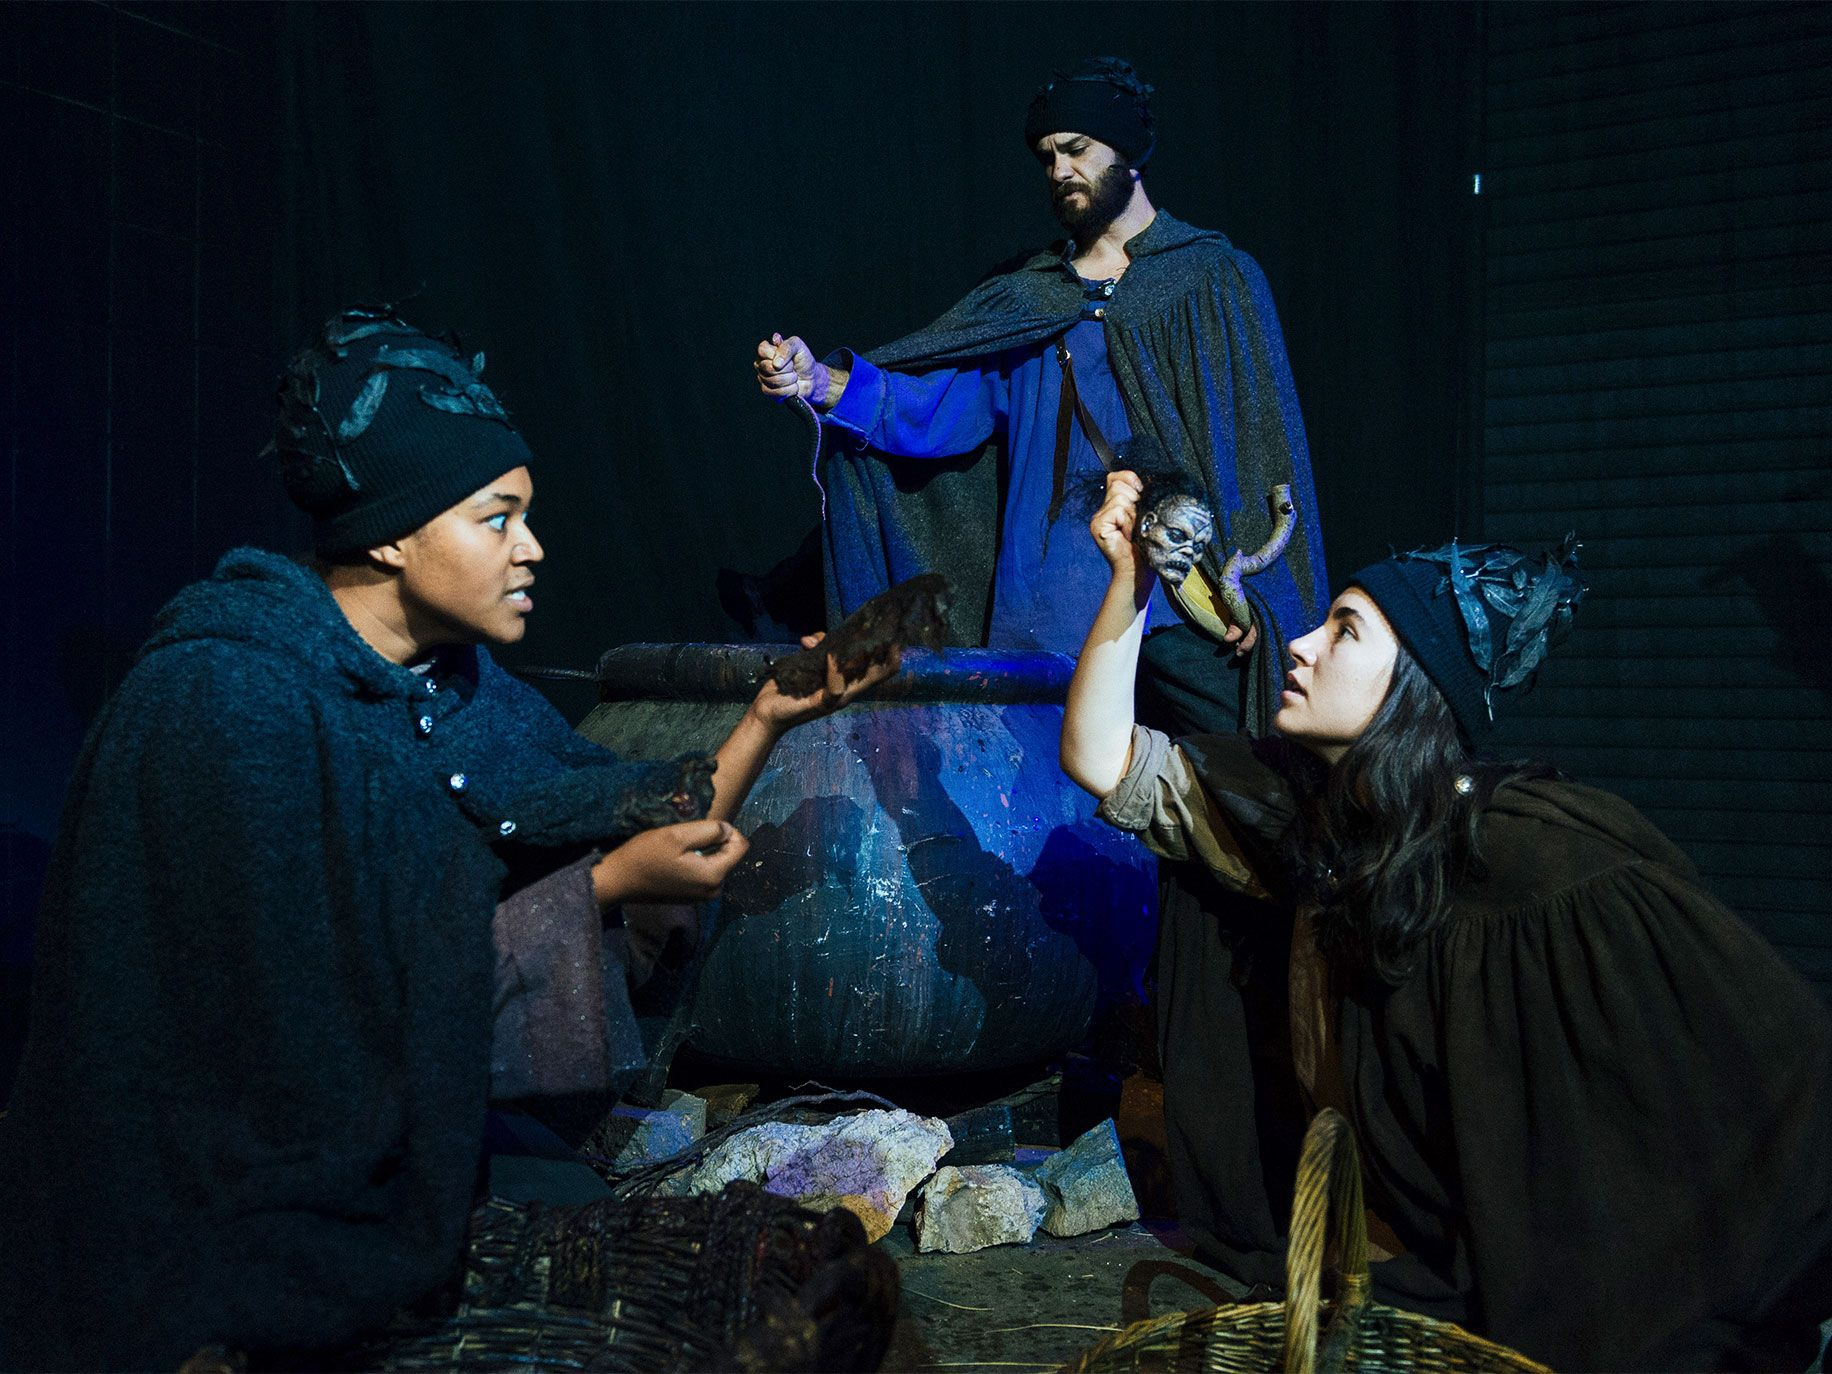 The Shakespeare Center of Los Angeles puts on a gory and immersive production of The Tragedie of Macbeth each year that has proven popular with audiences.